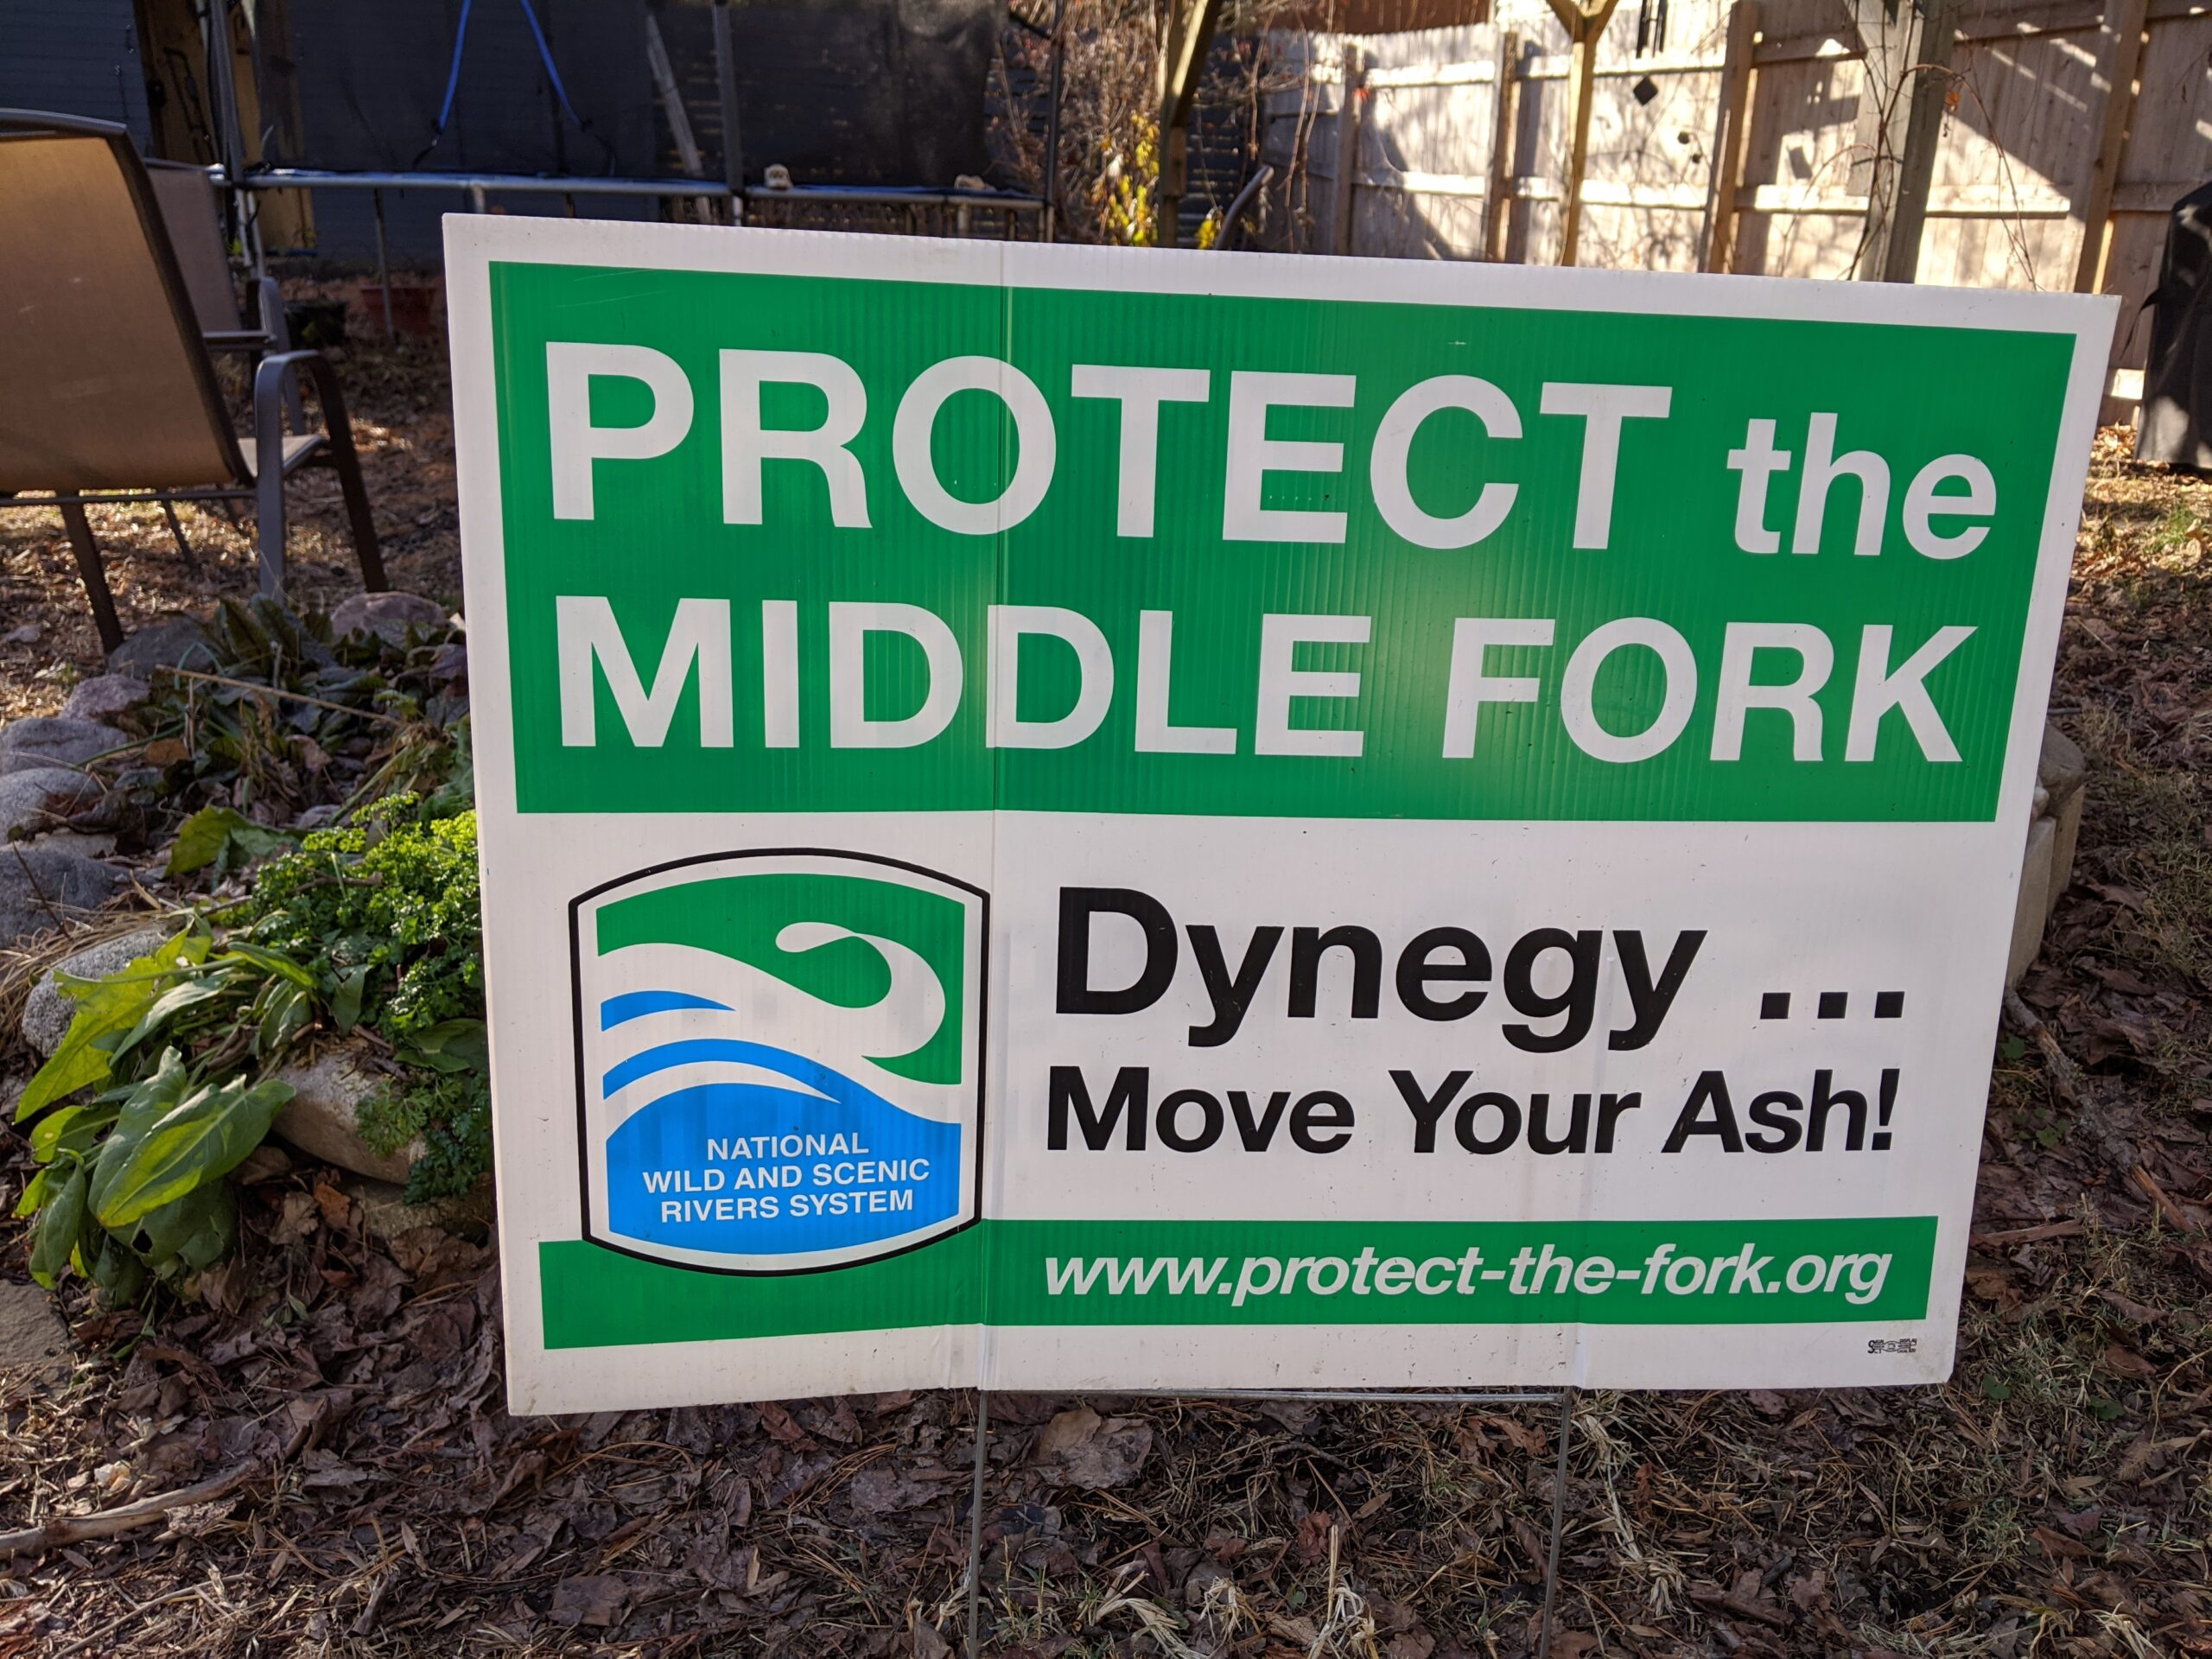 A green and blue yard sign with large lettering reads: Protect the Middle Fork: Dynegy...Move Your Ash!